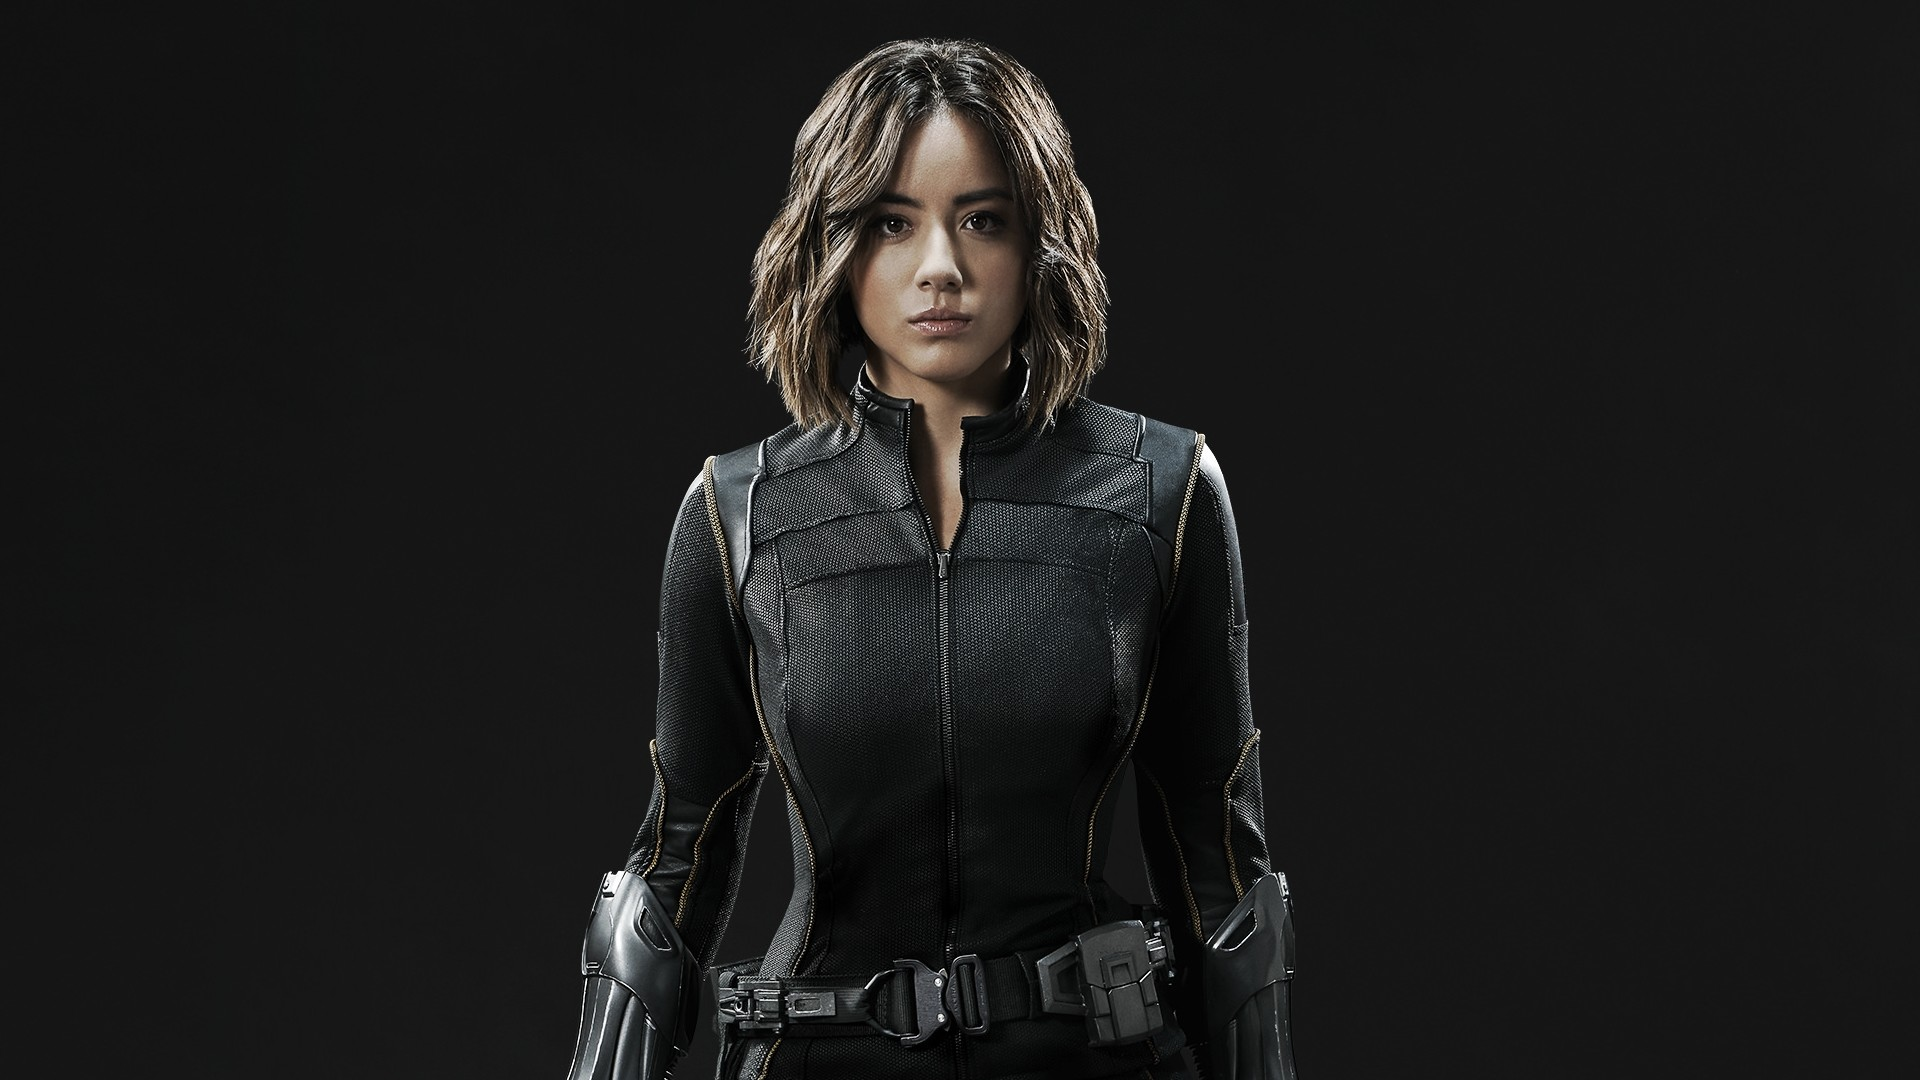 1920x1080 TV Show - Marvel's Agents of S.H.I.E.L.D. Daisy (Agents of S.H.I.E.L.D.)  Chloe Bennet Wallpaper